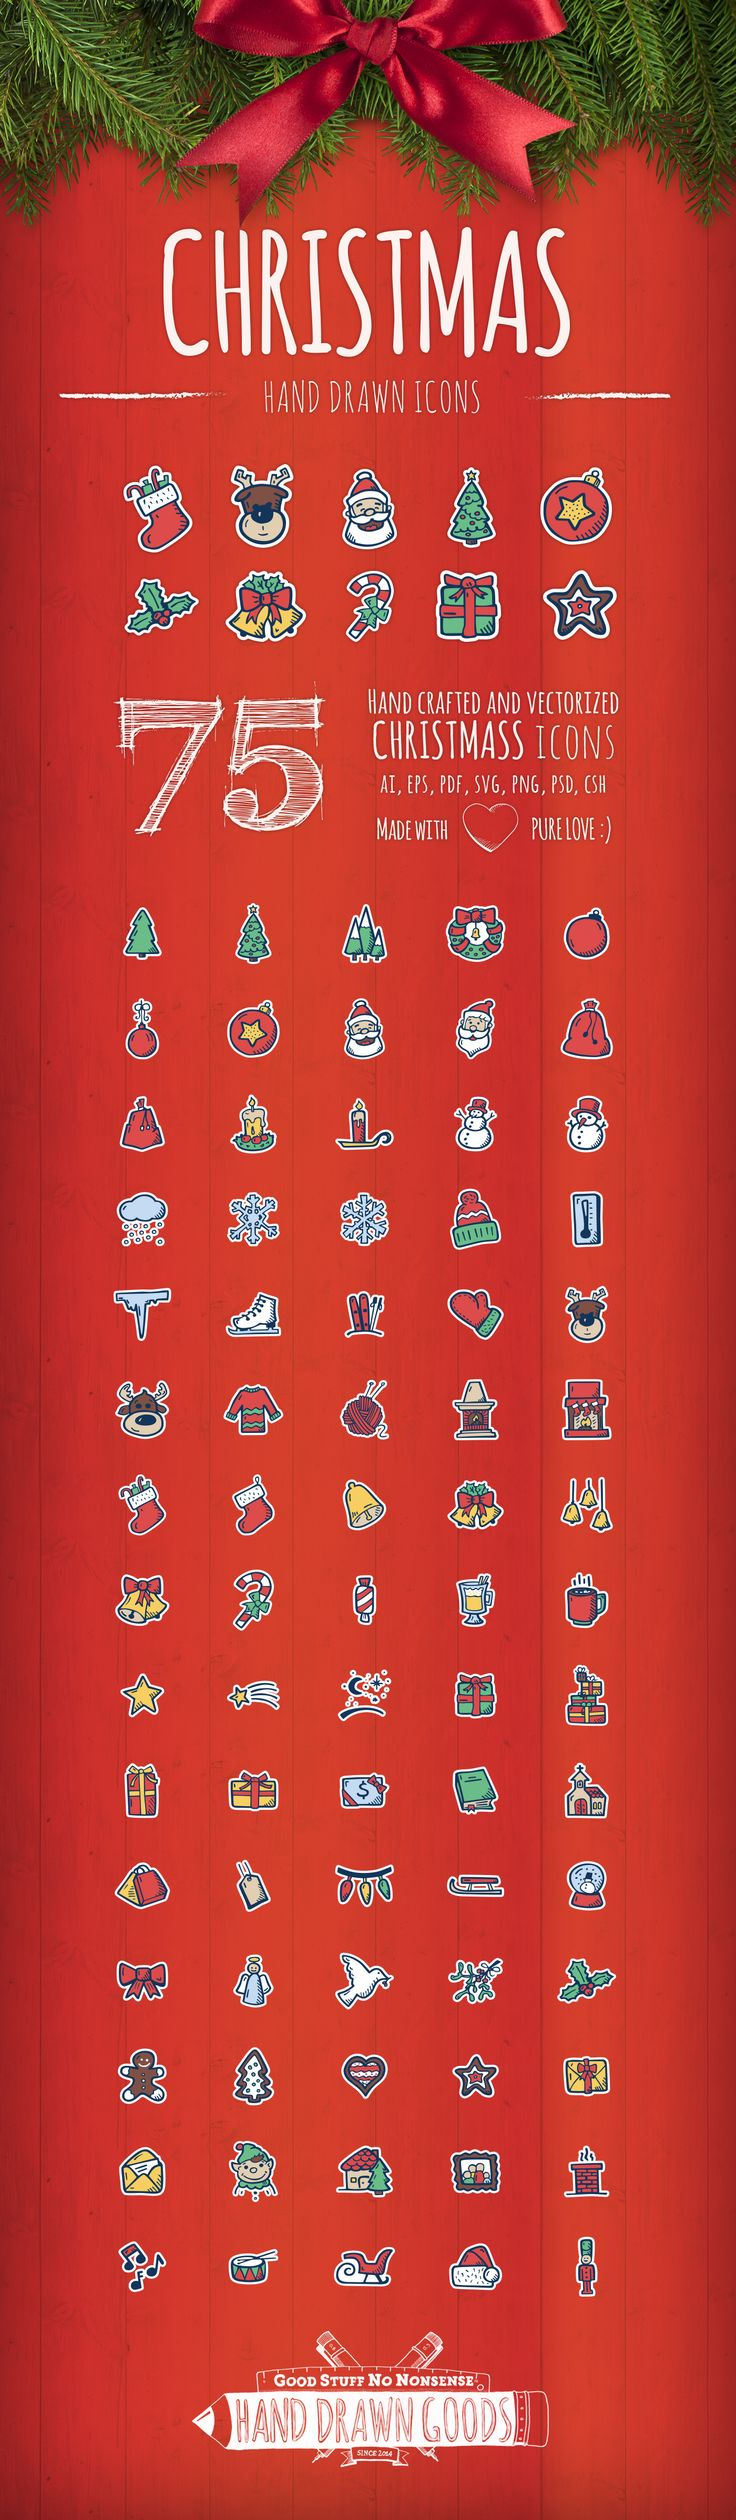 Christmas - Hand Drawn Icons on Behance